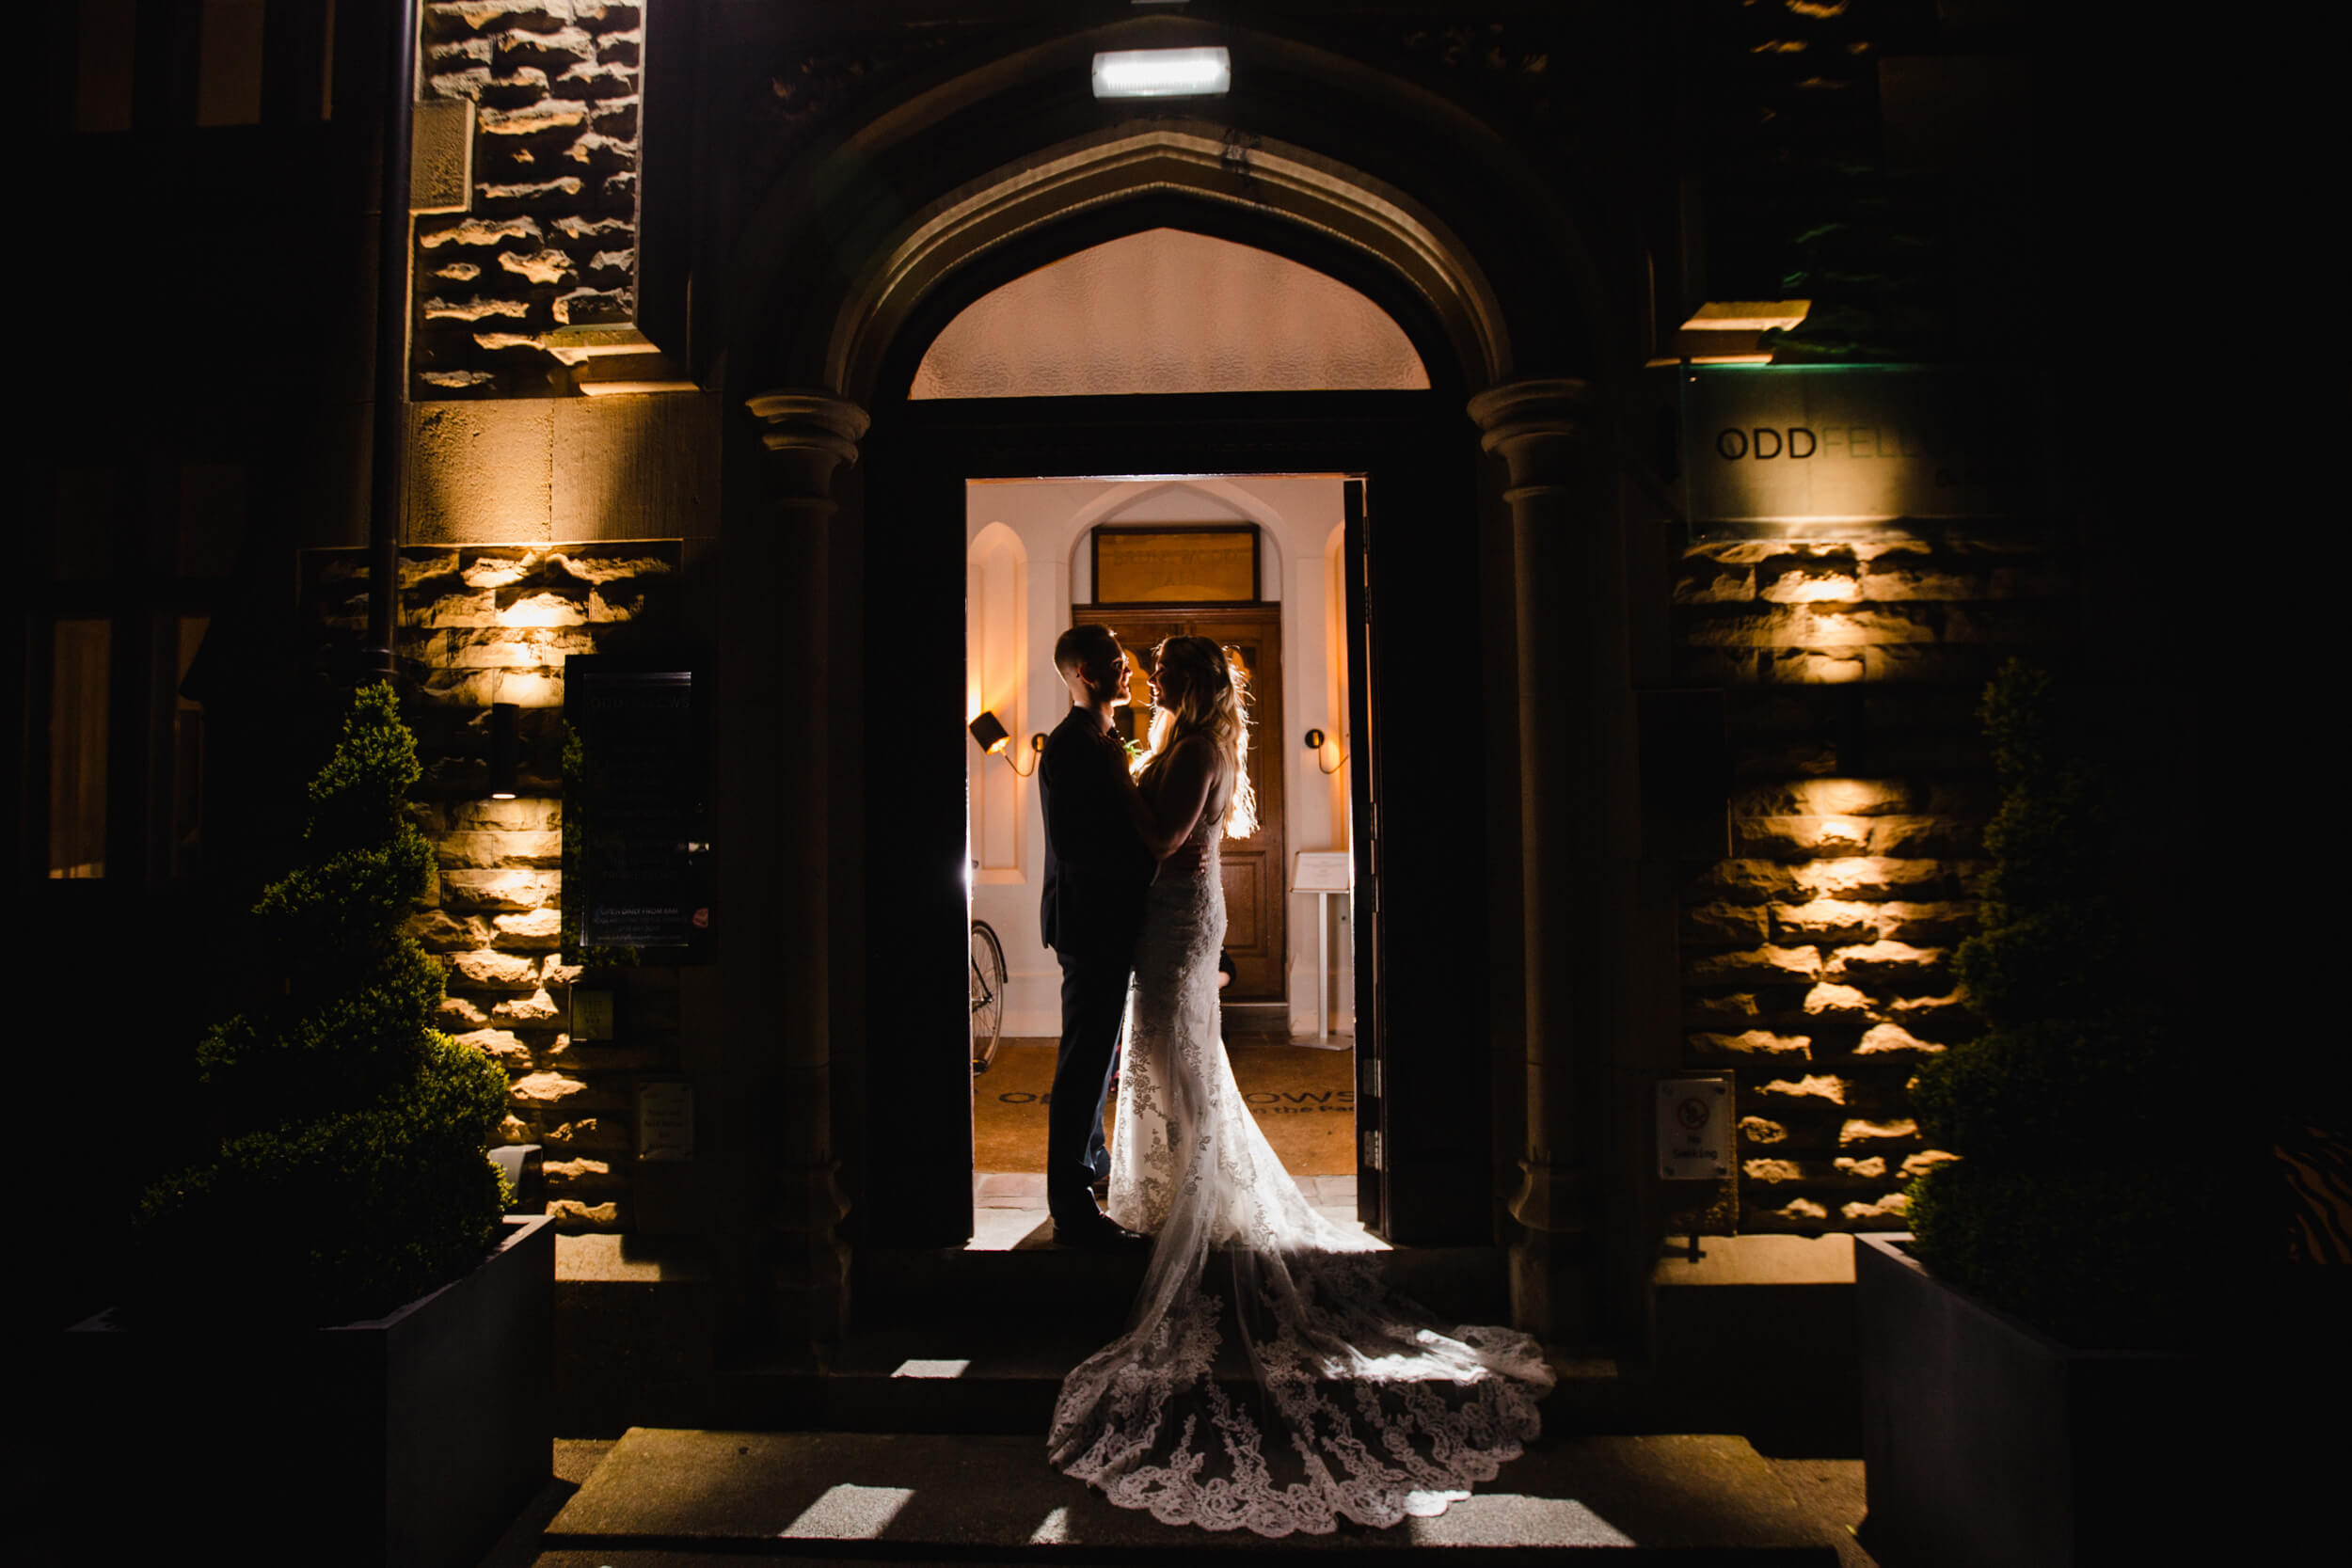 night exposure photograph using flash to light wedded couple in doorway of oddfellows on the park